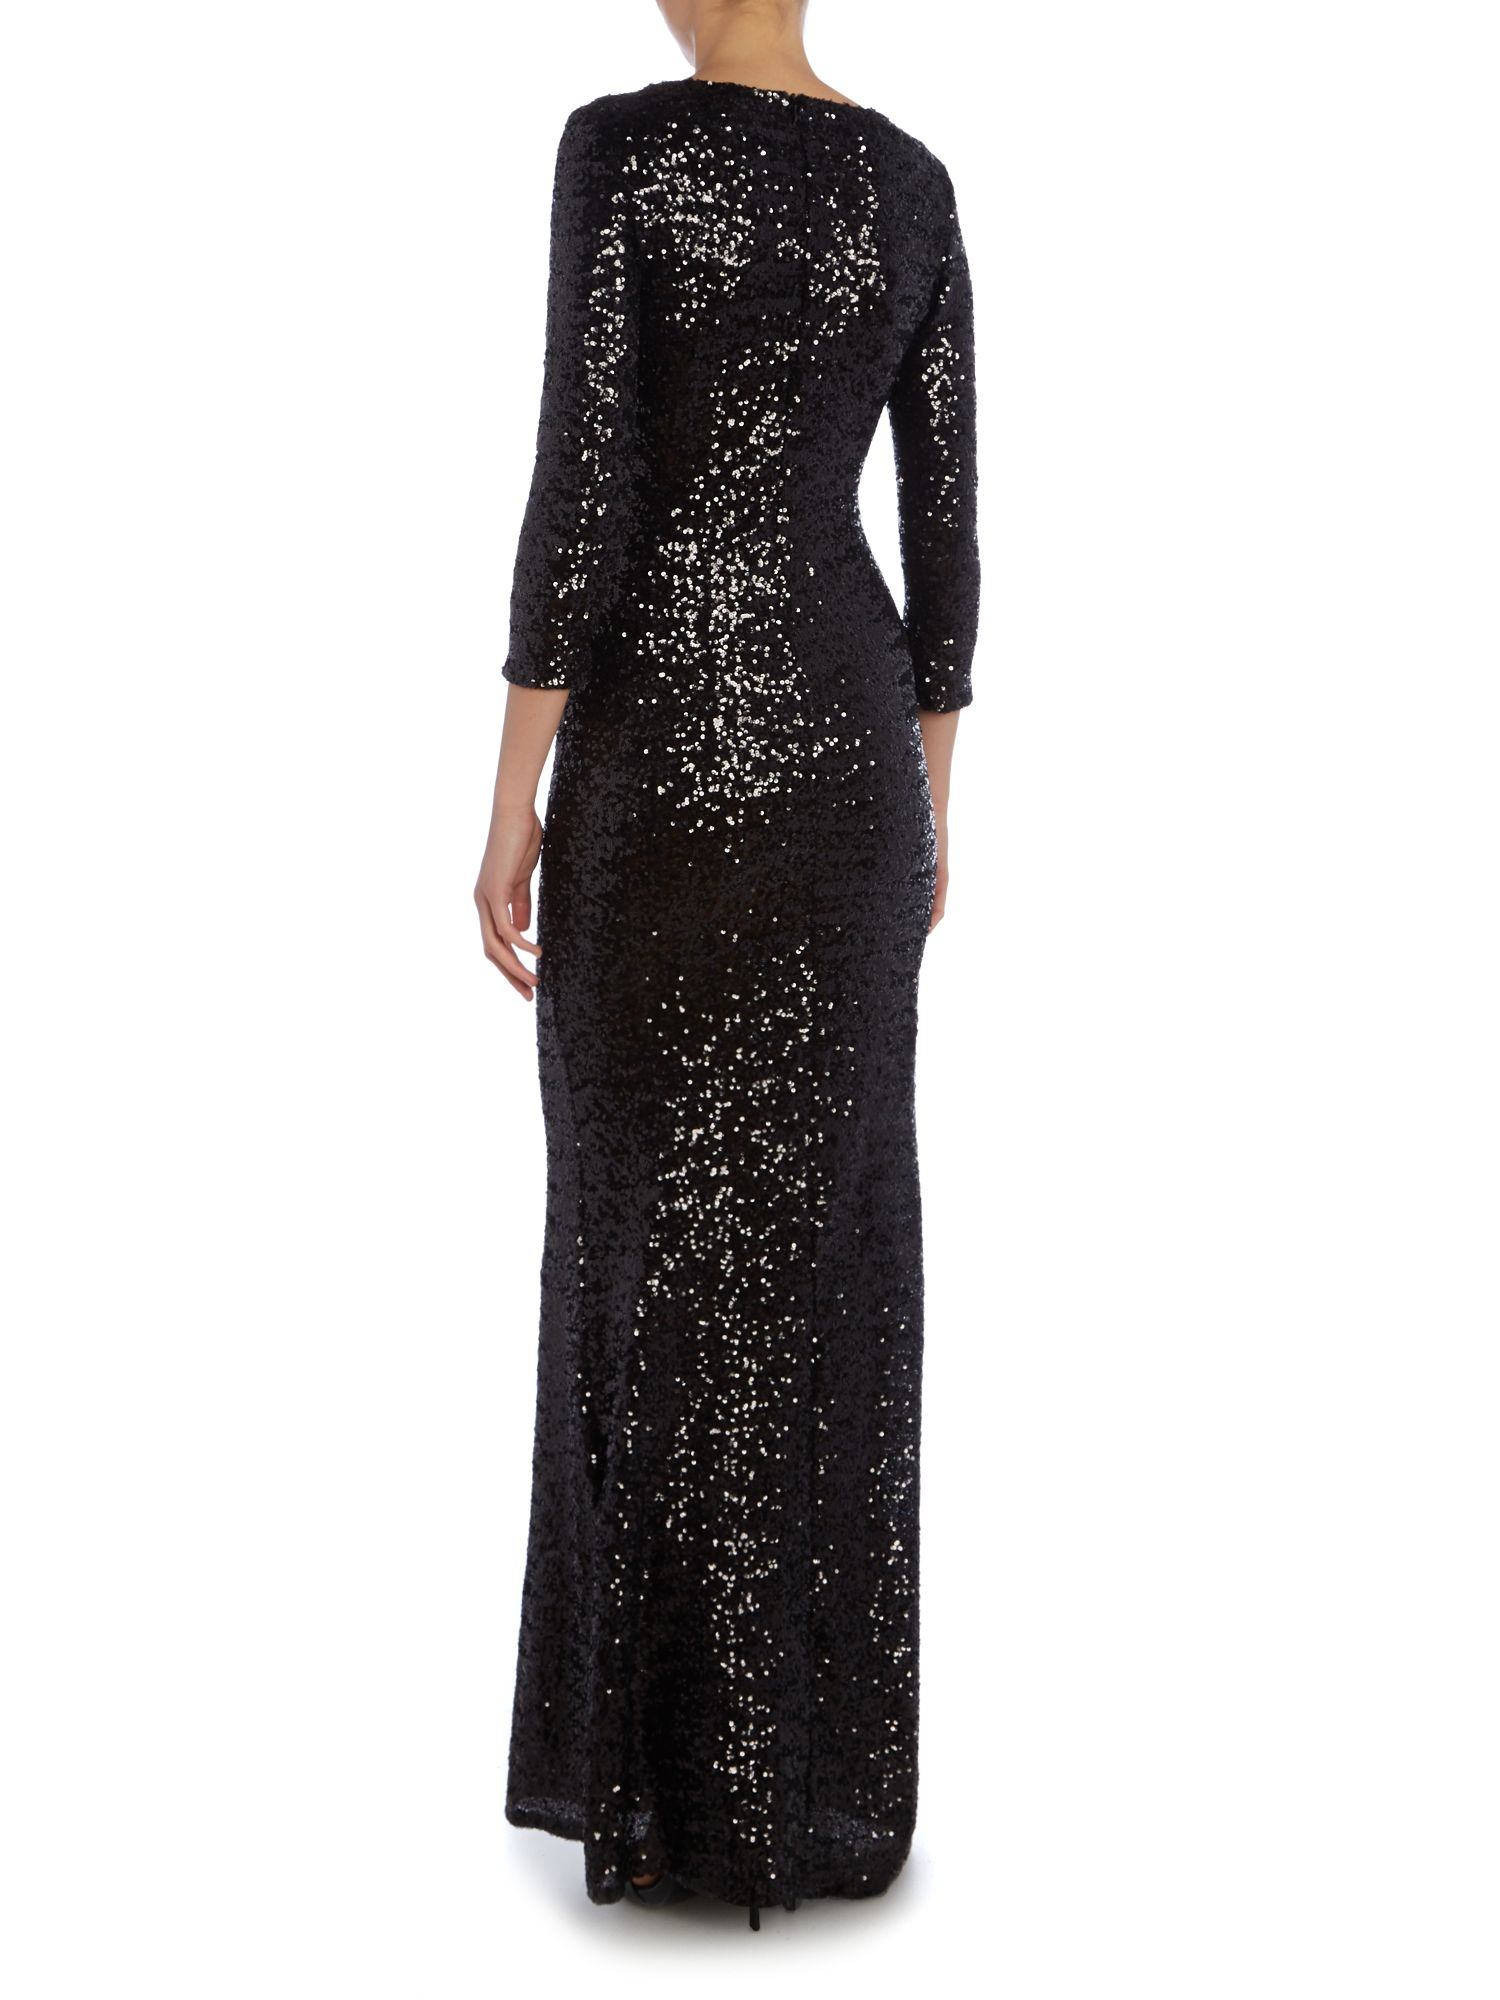 Sequin Maxi Dress Long Sleeve - Perfect Choices